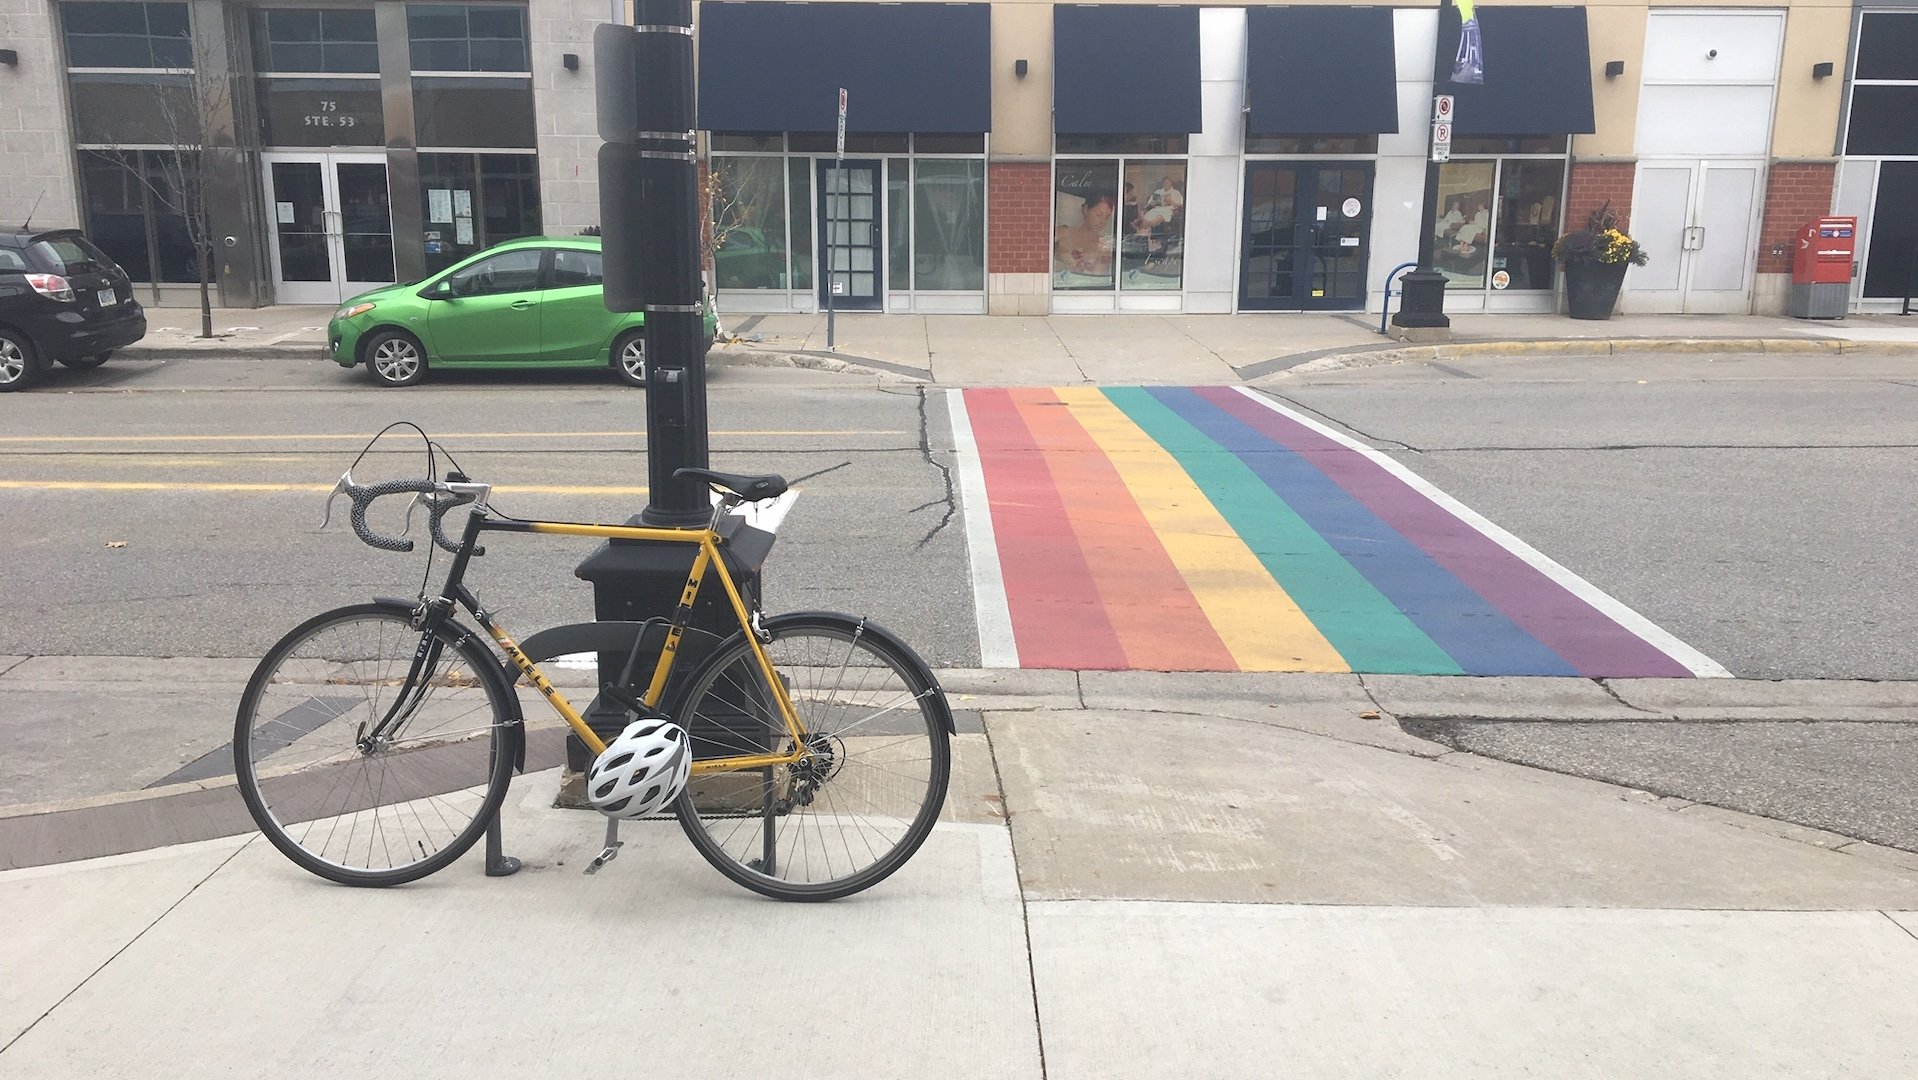 A crosswalk that has painted in rainbow colours. A bike is in the foreground locked to a bike rack with a helmet attached to the bike